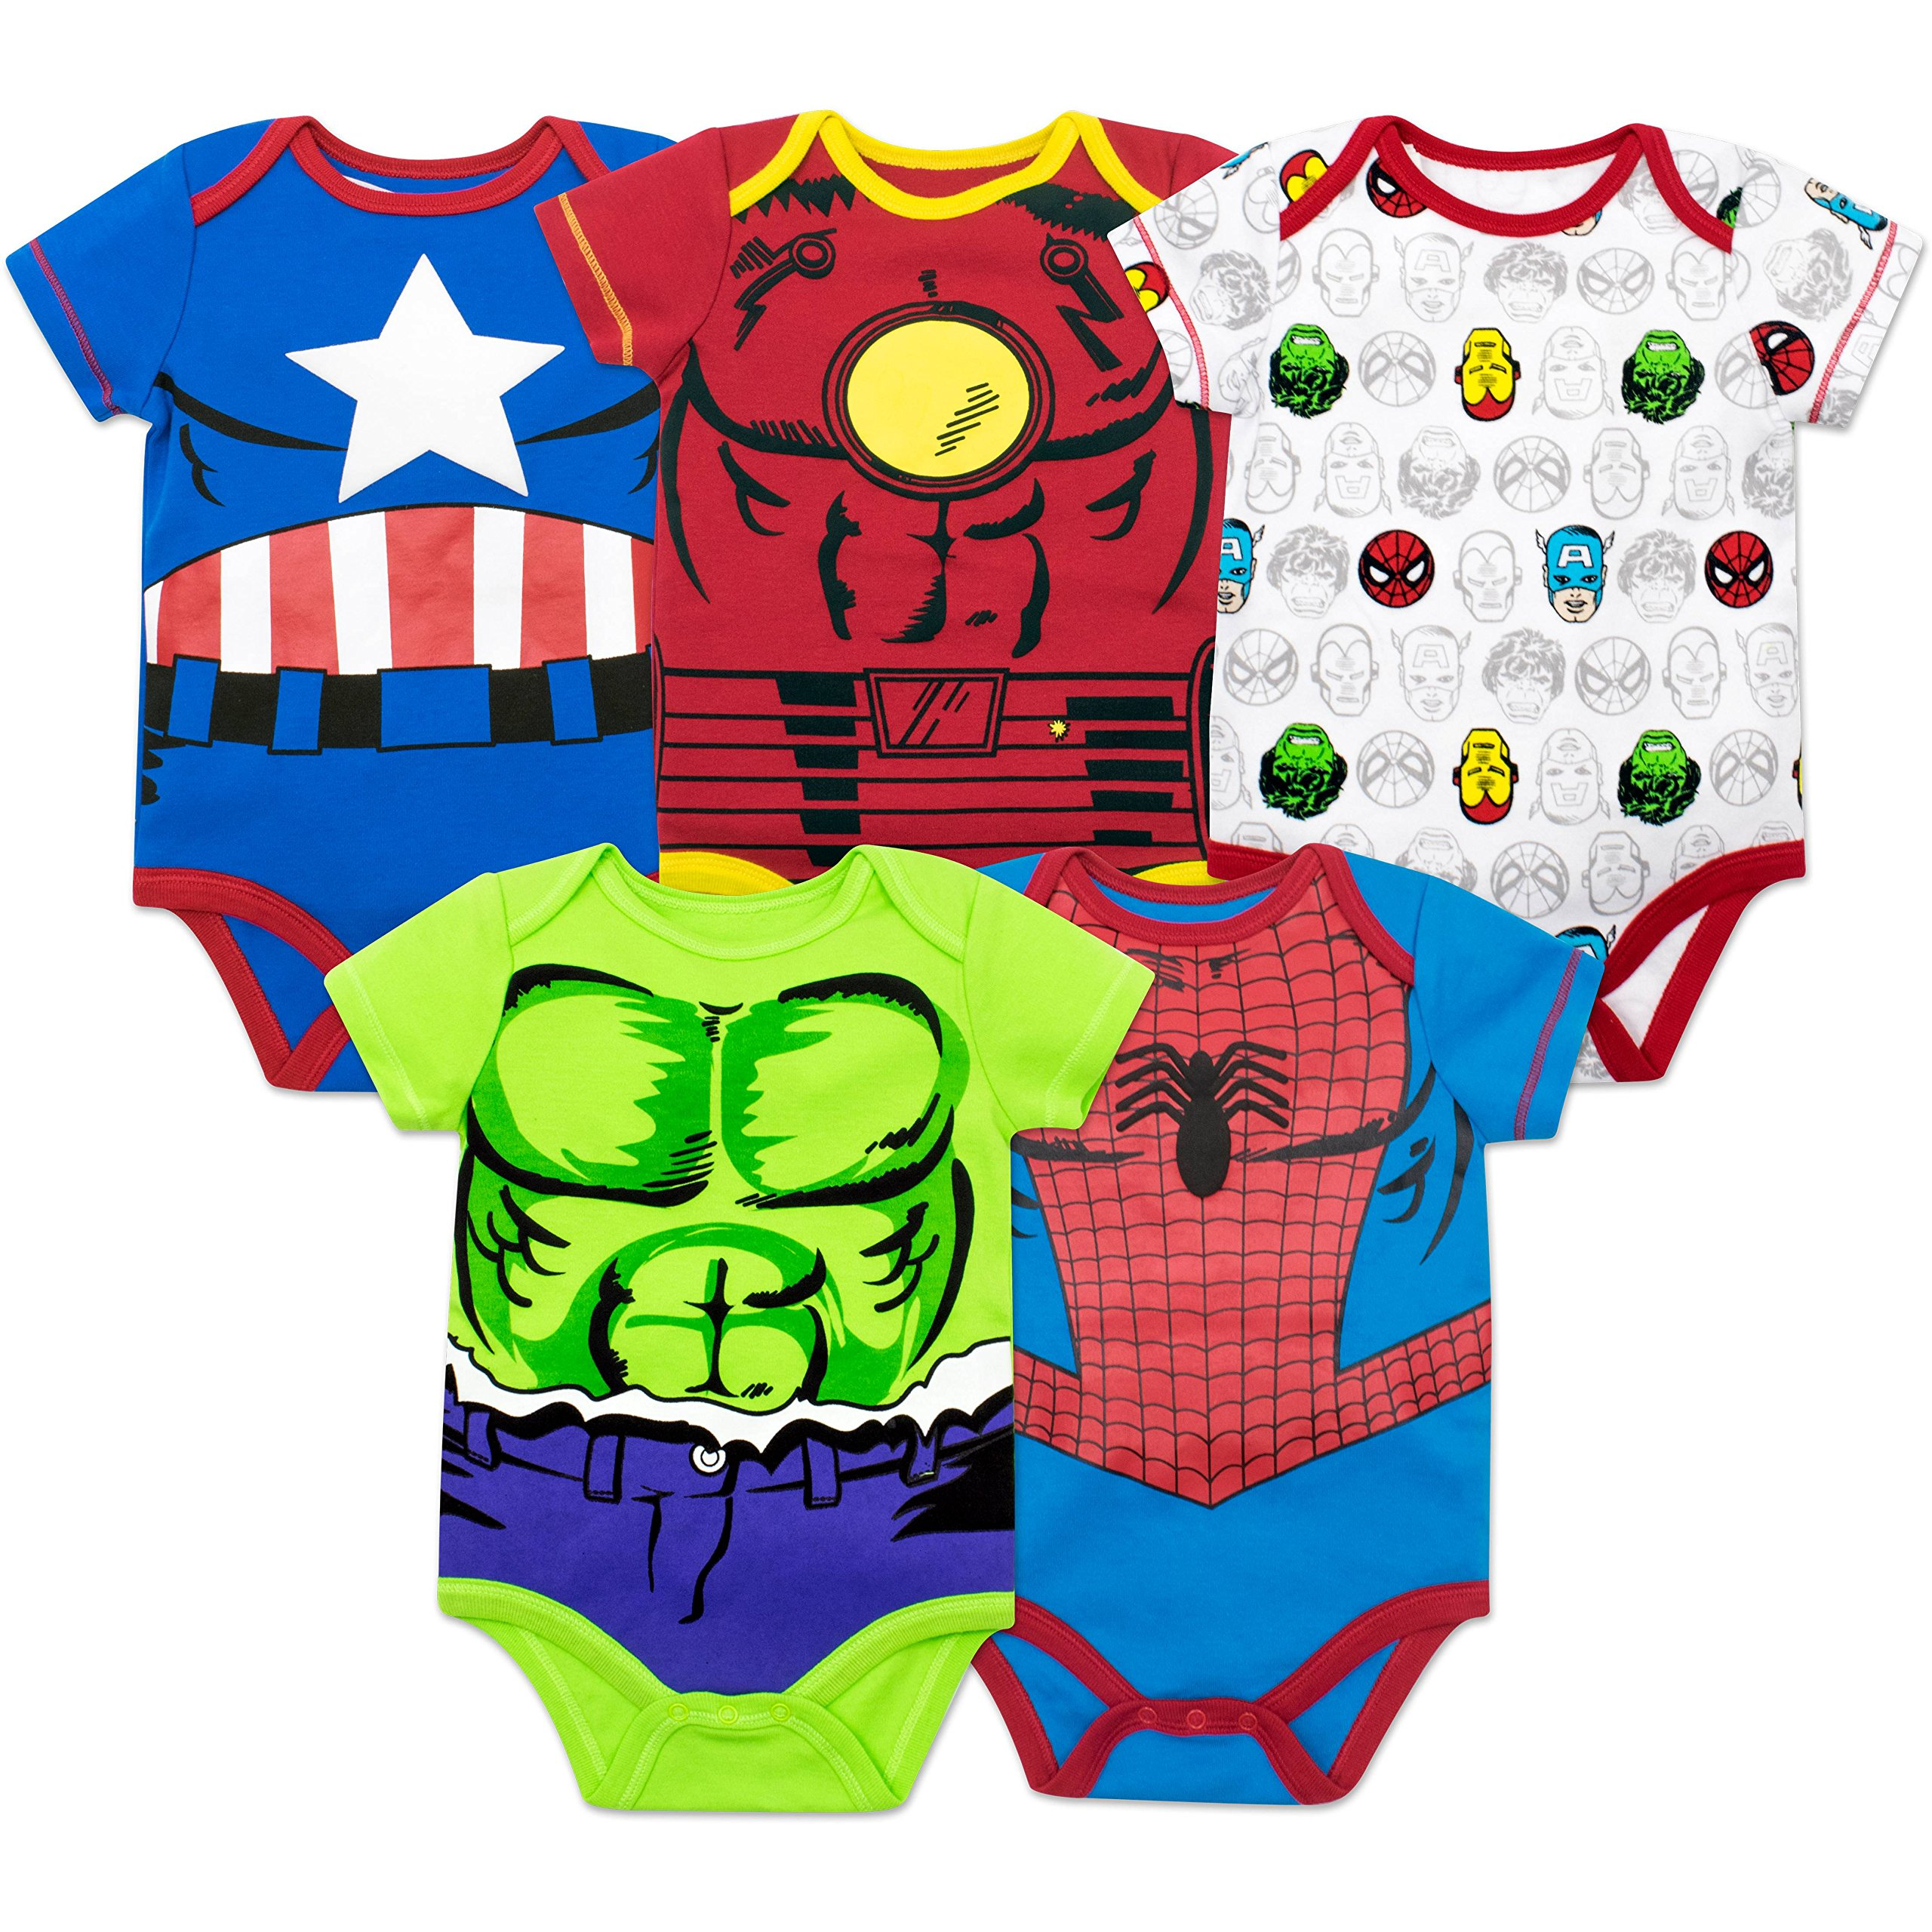 Marvel Baby Boys' 5 Pack Onesies - The Hulk, Spiderman, Iron Man and Captain America (0-3 Months)